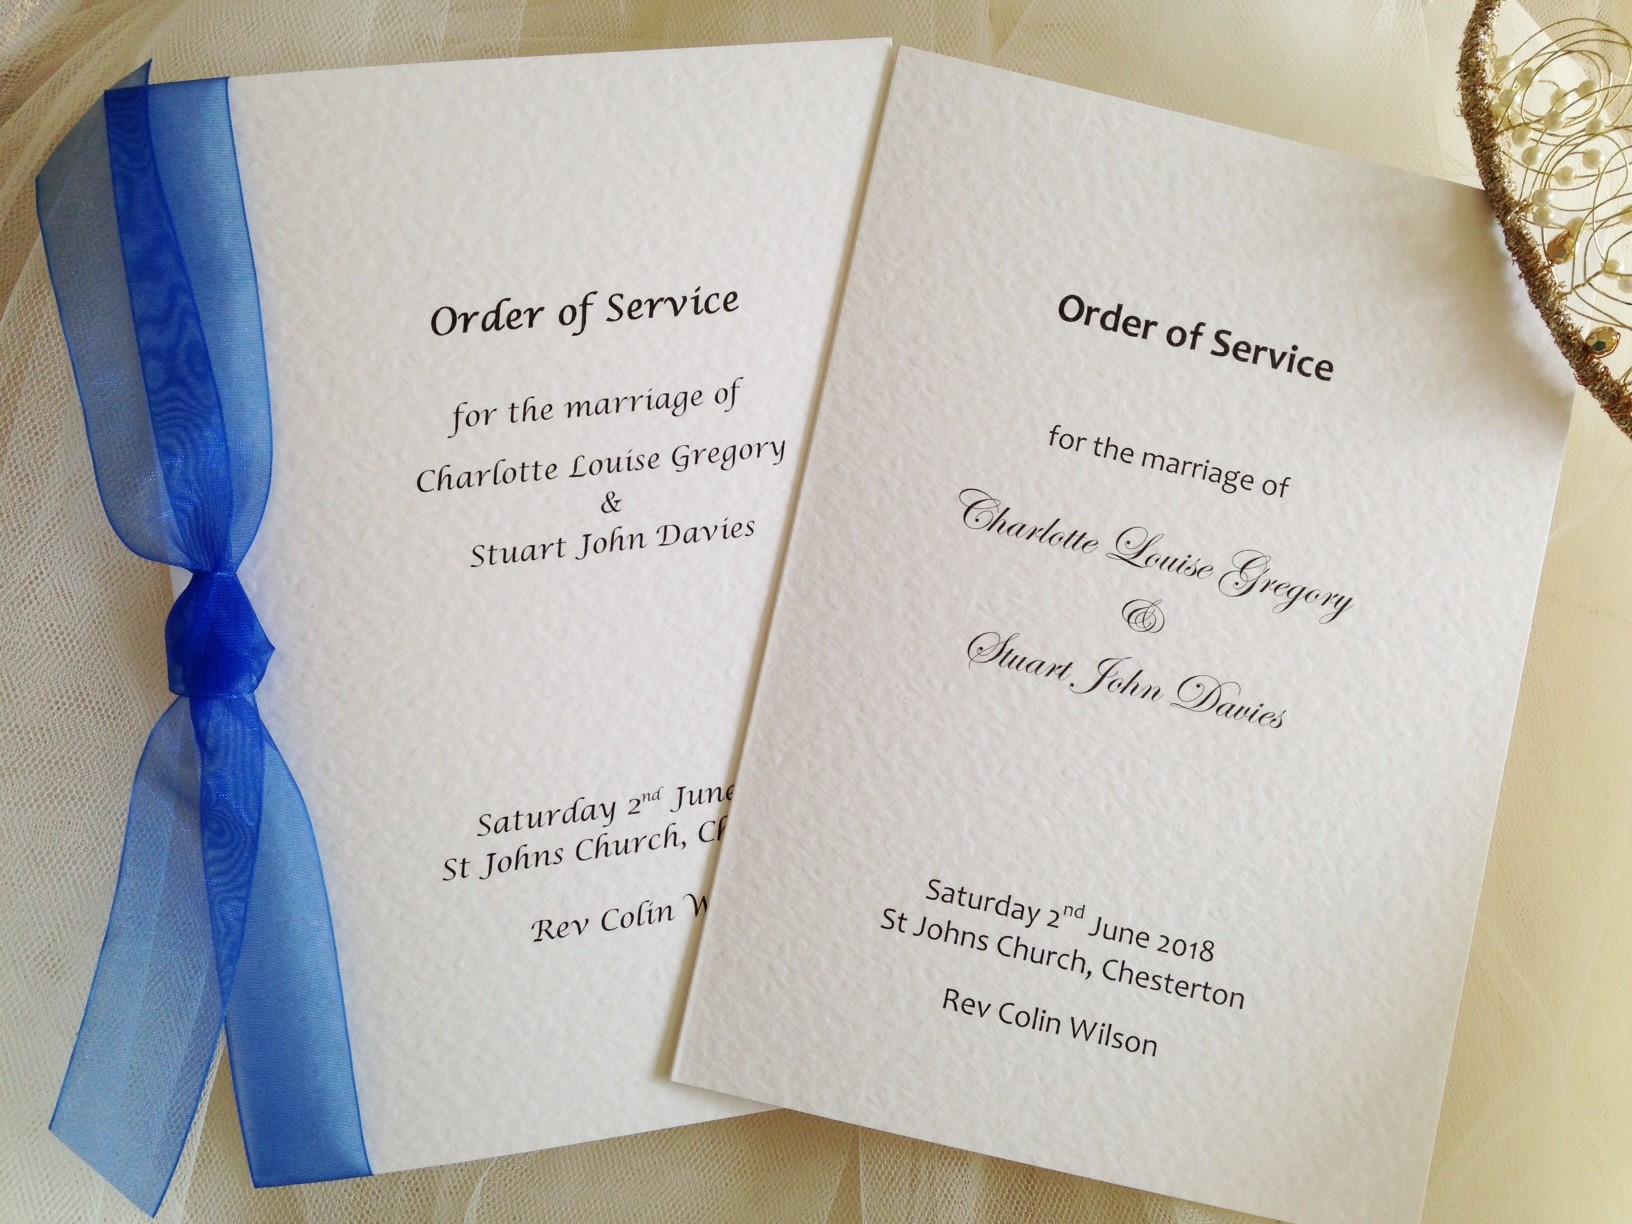 Large Order of Service Books from £1.75